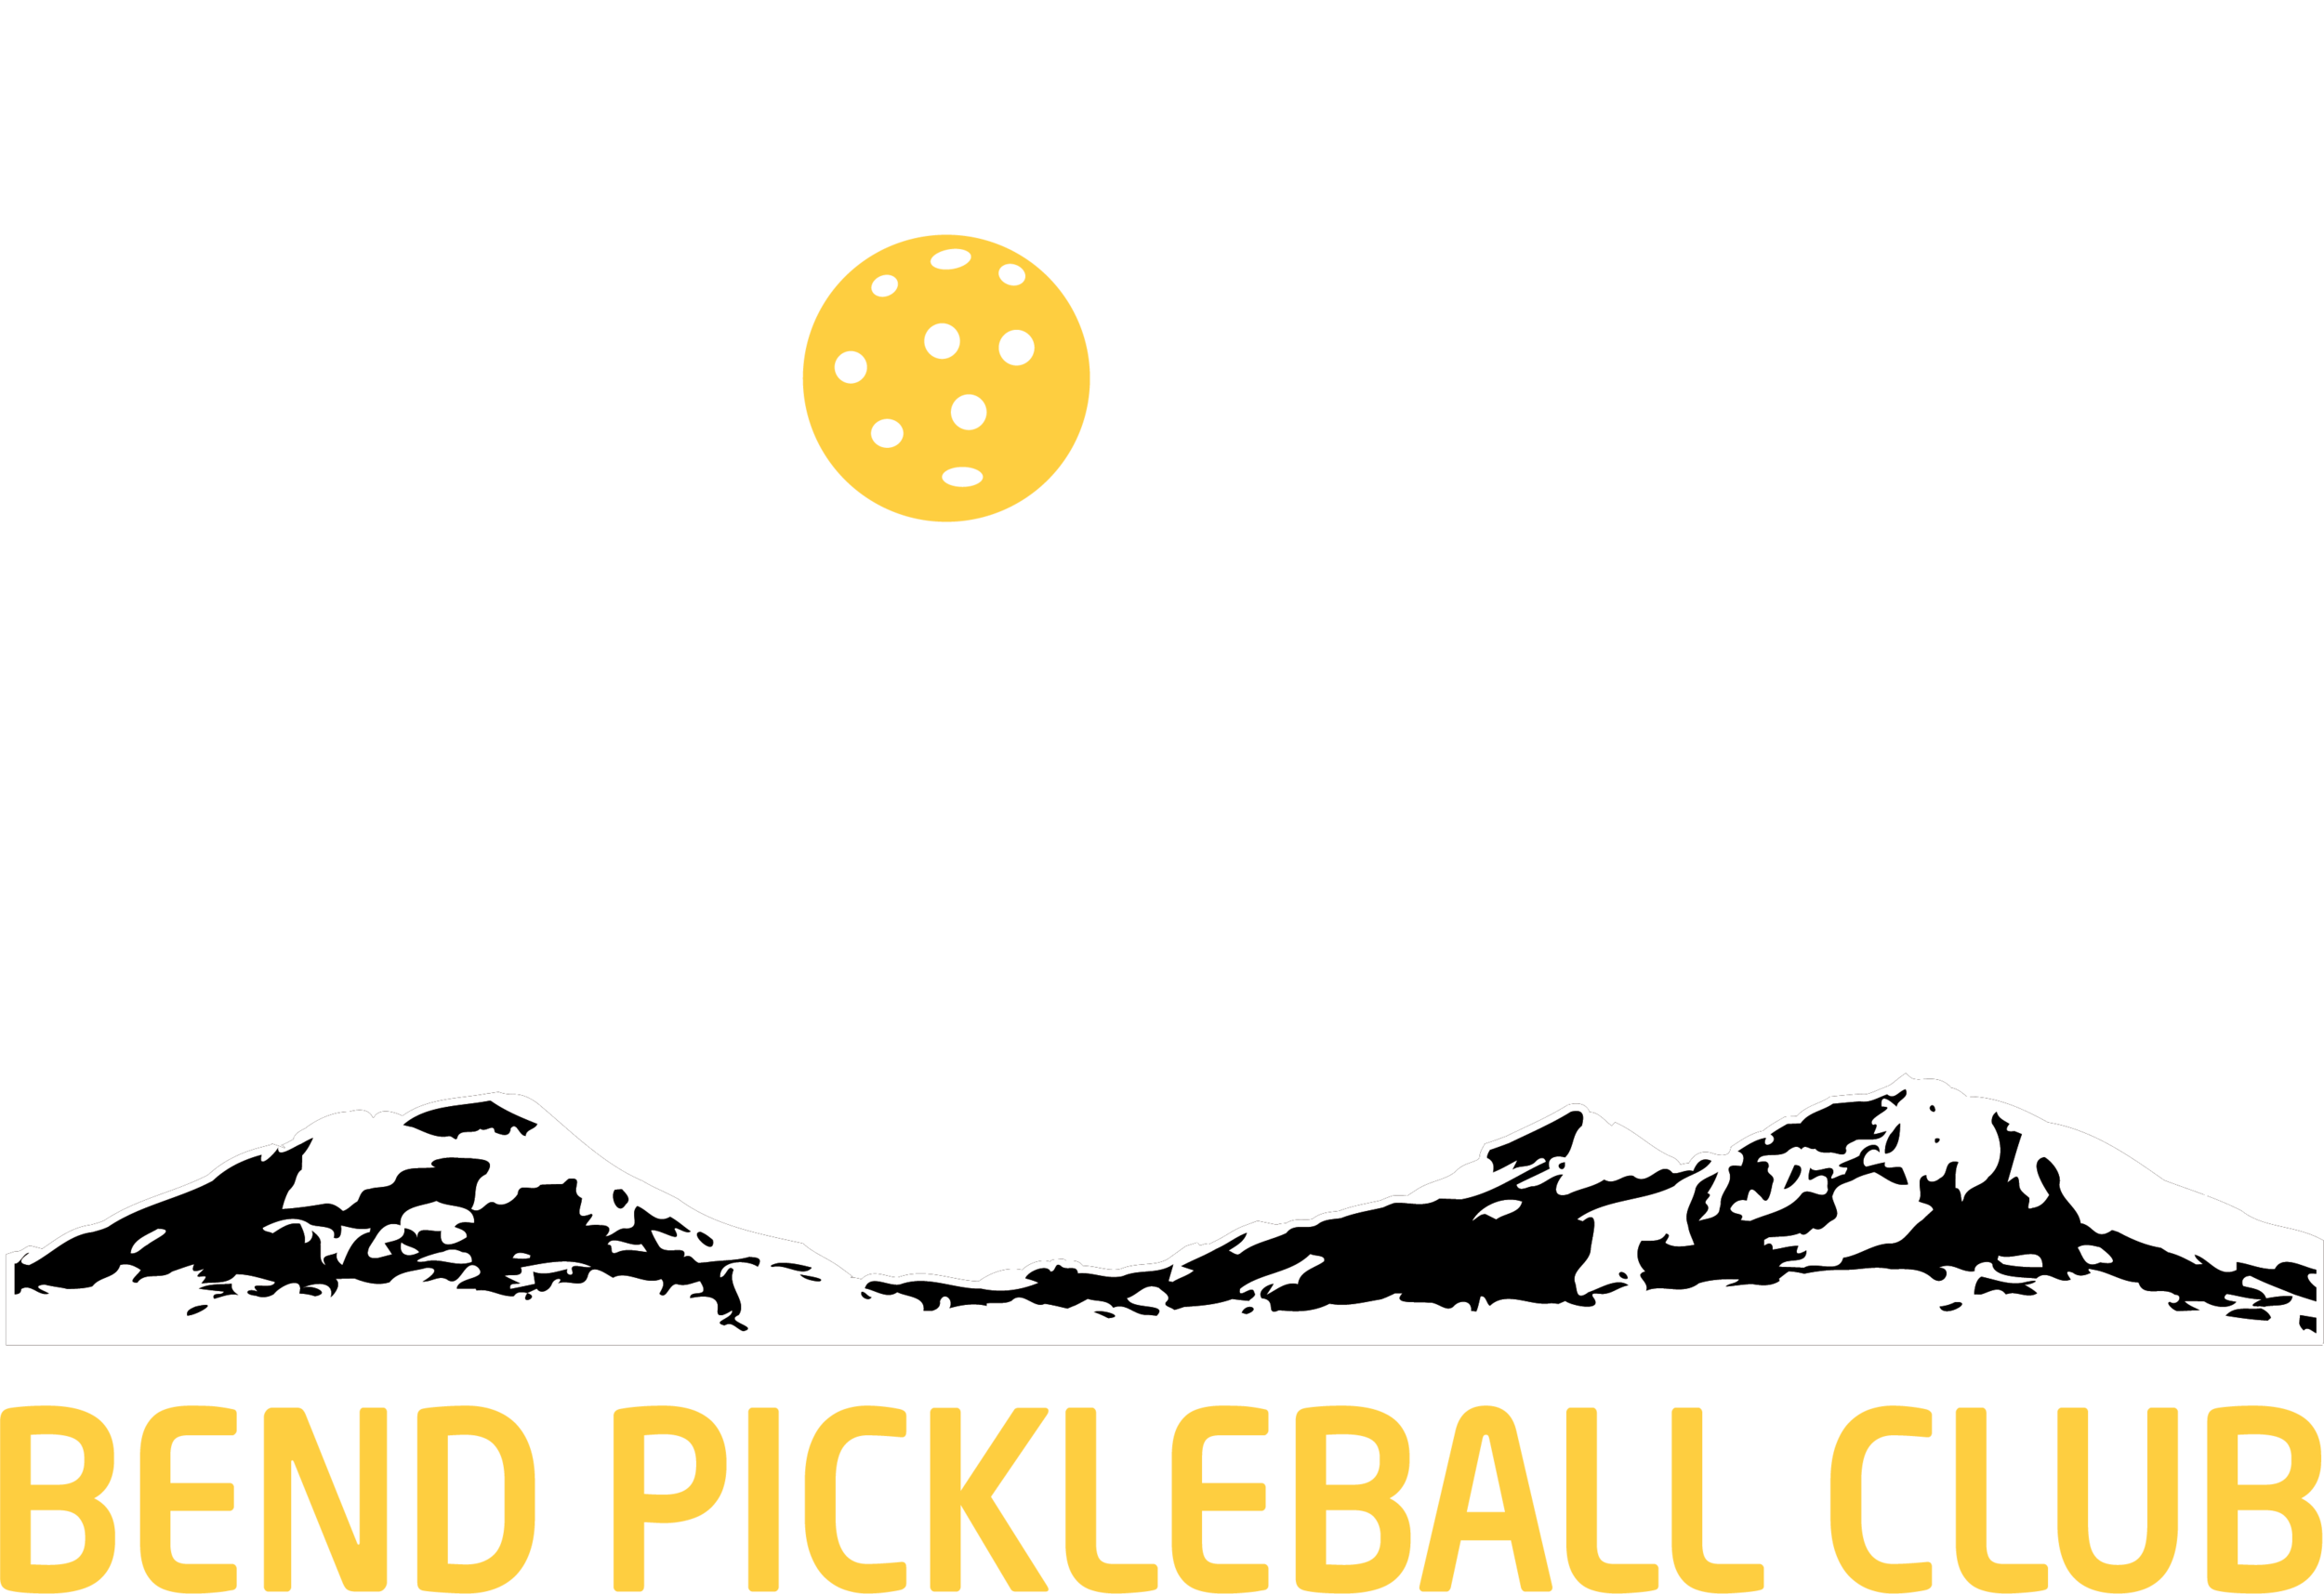 Bend Pickleball Club 17-0899-03.png